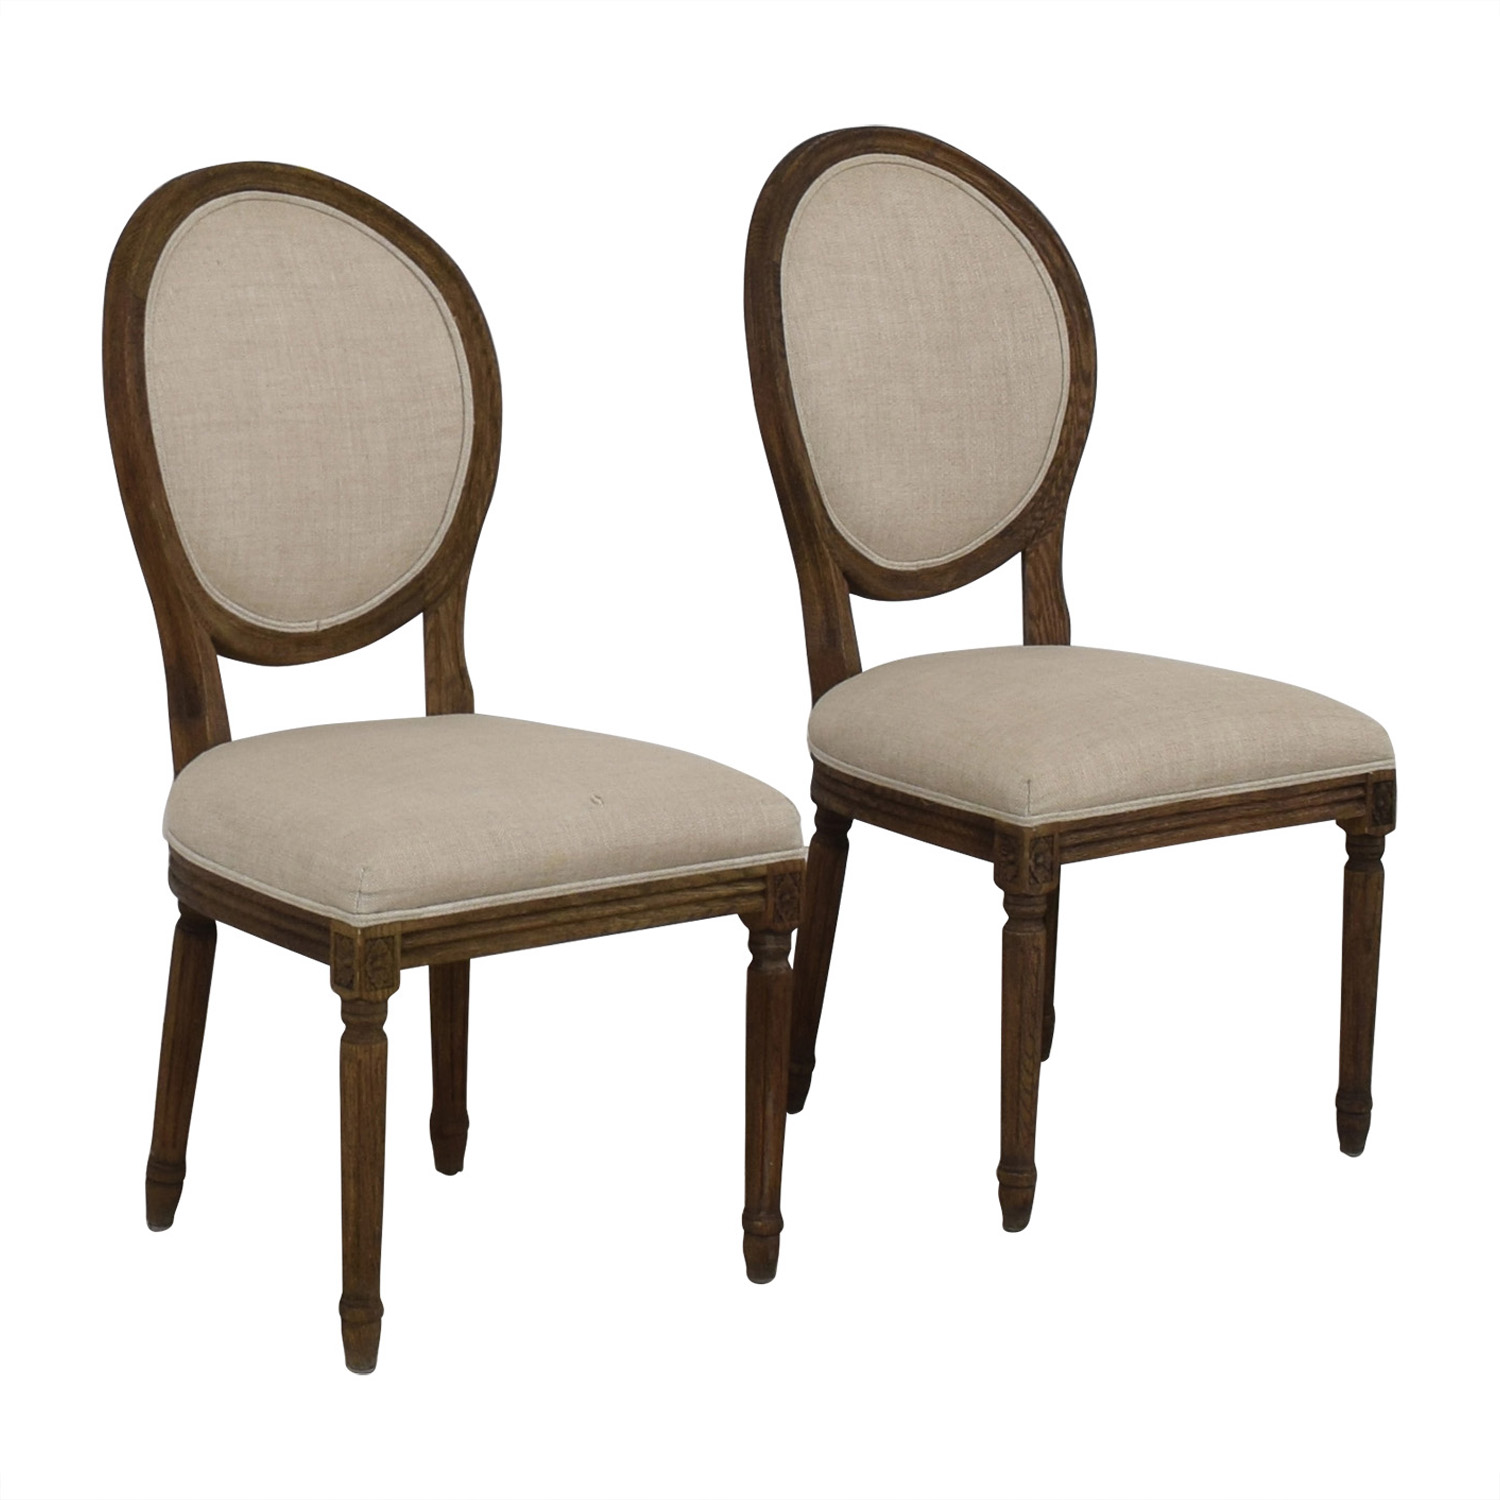 Restoration Hardware Restoration Hardware Vintage French Grey Upholstered Chairs nyc